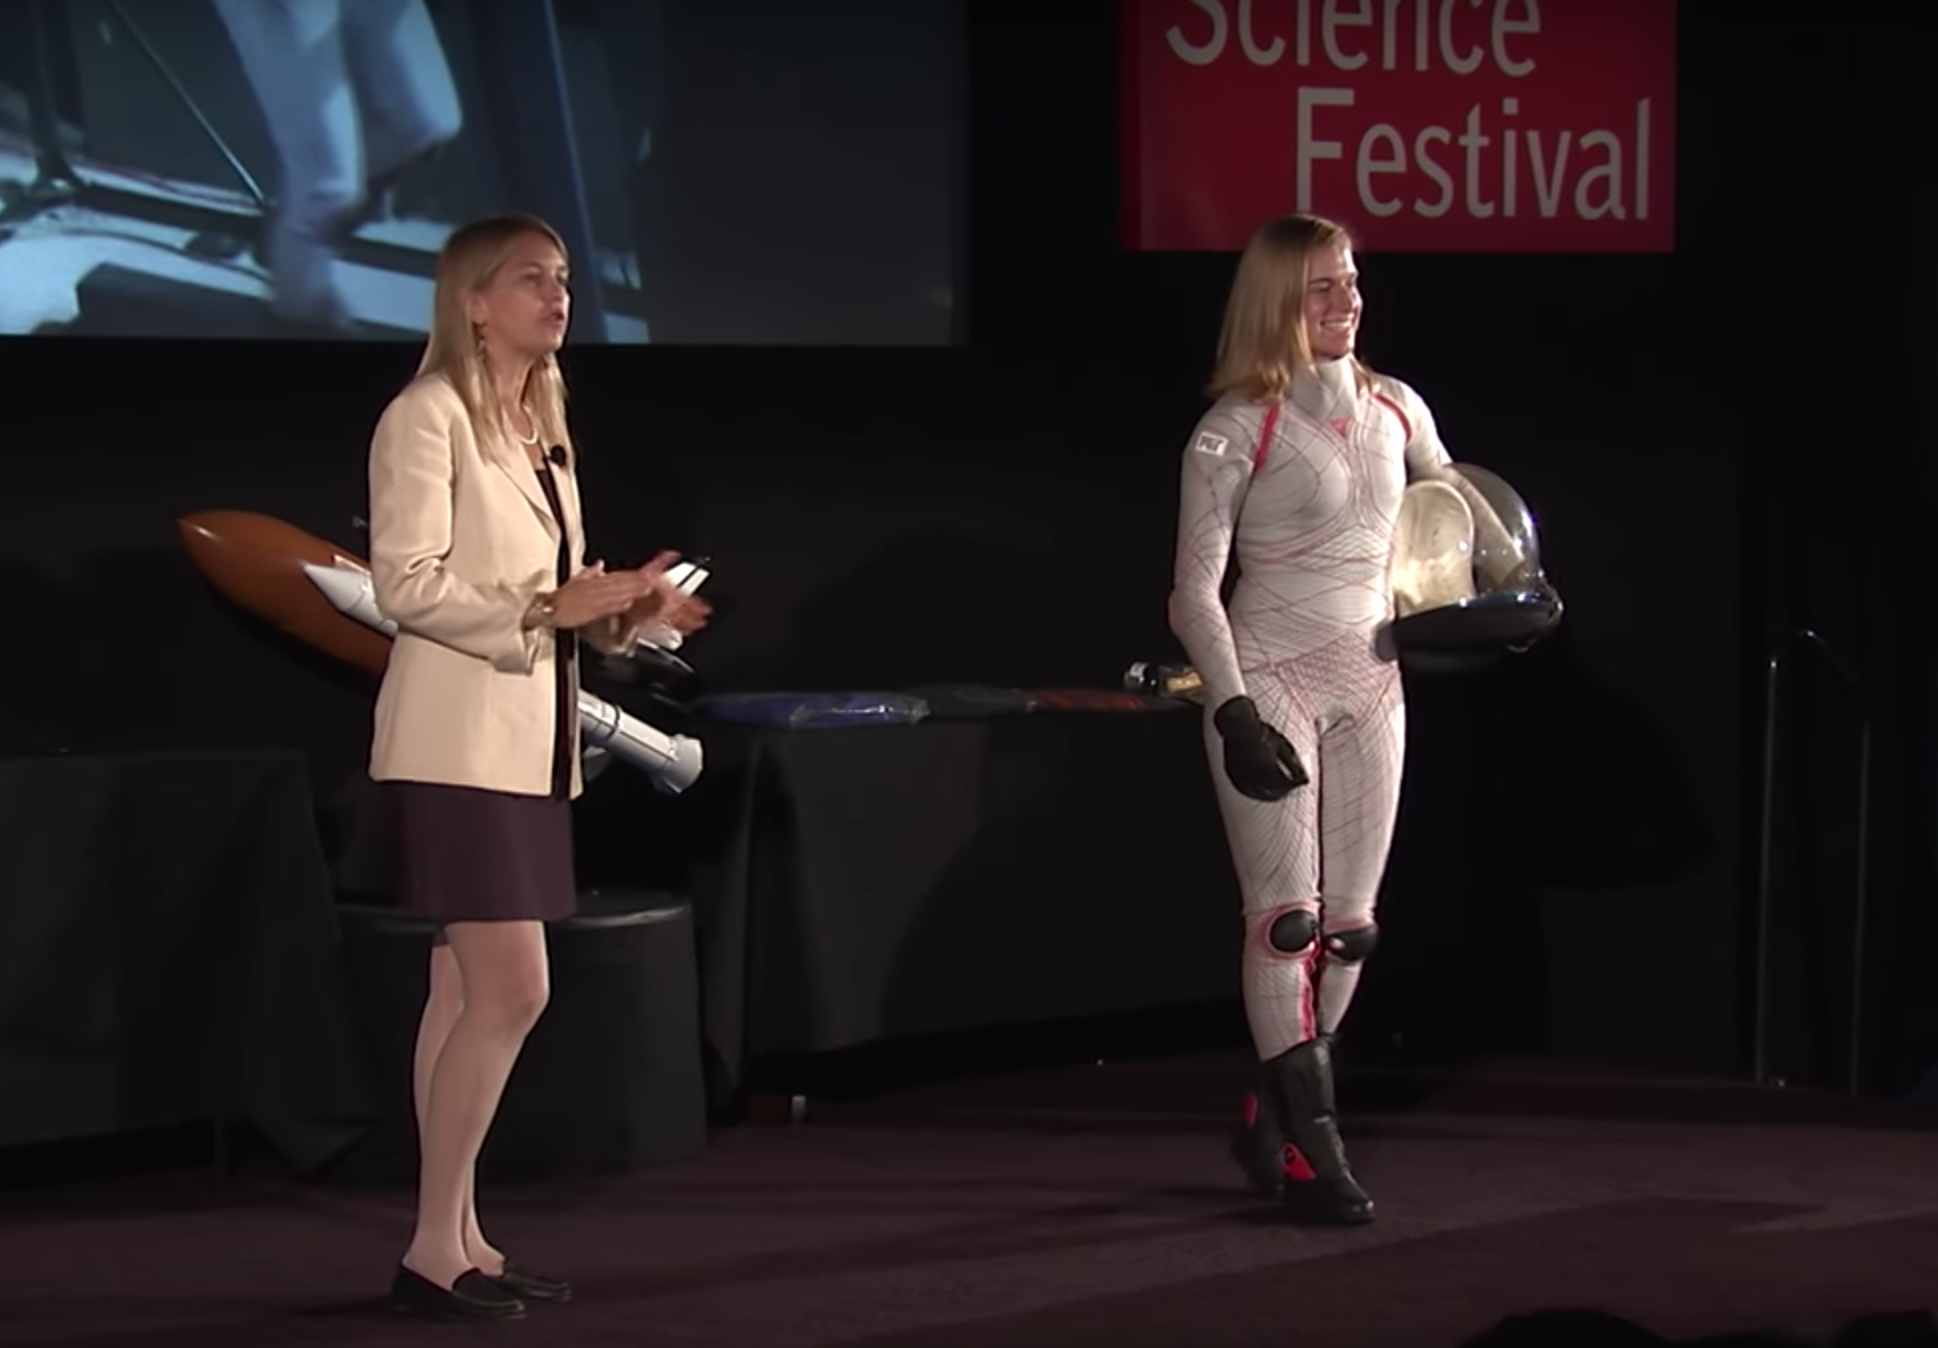 Dr. Dava Newman reveals her spacesuit prototype at the World Science Festival. (Image: YouTube/Screenshot)